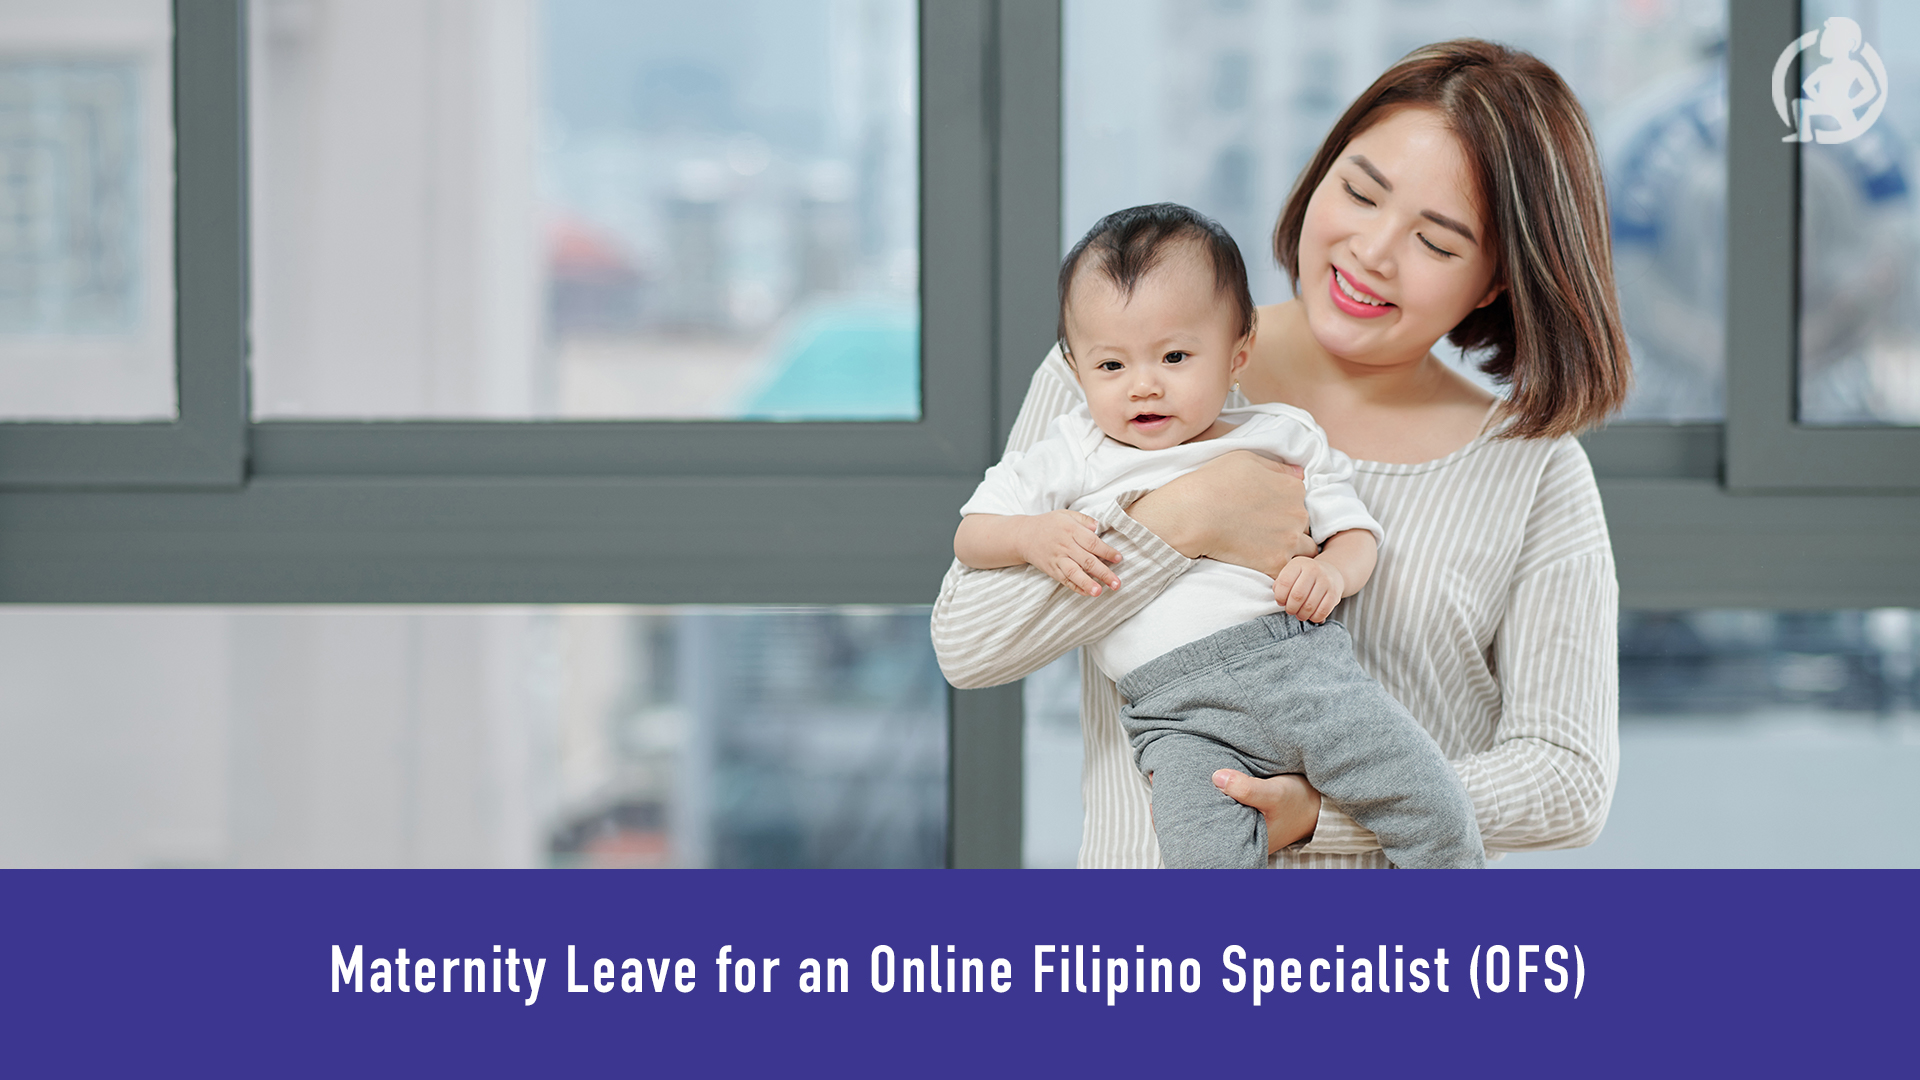 586 Maternity Leave for an Online Filipino Specialist (OFS) Feature